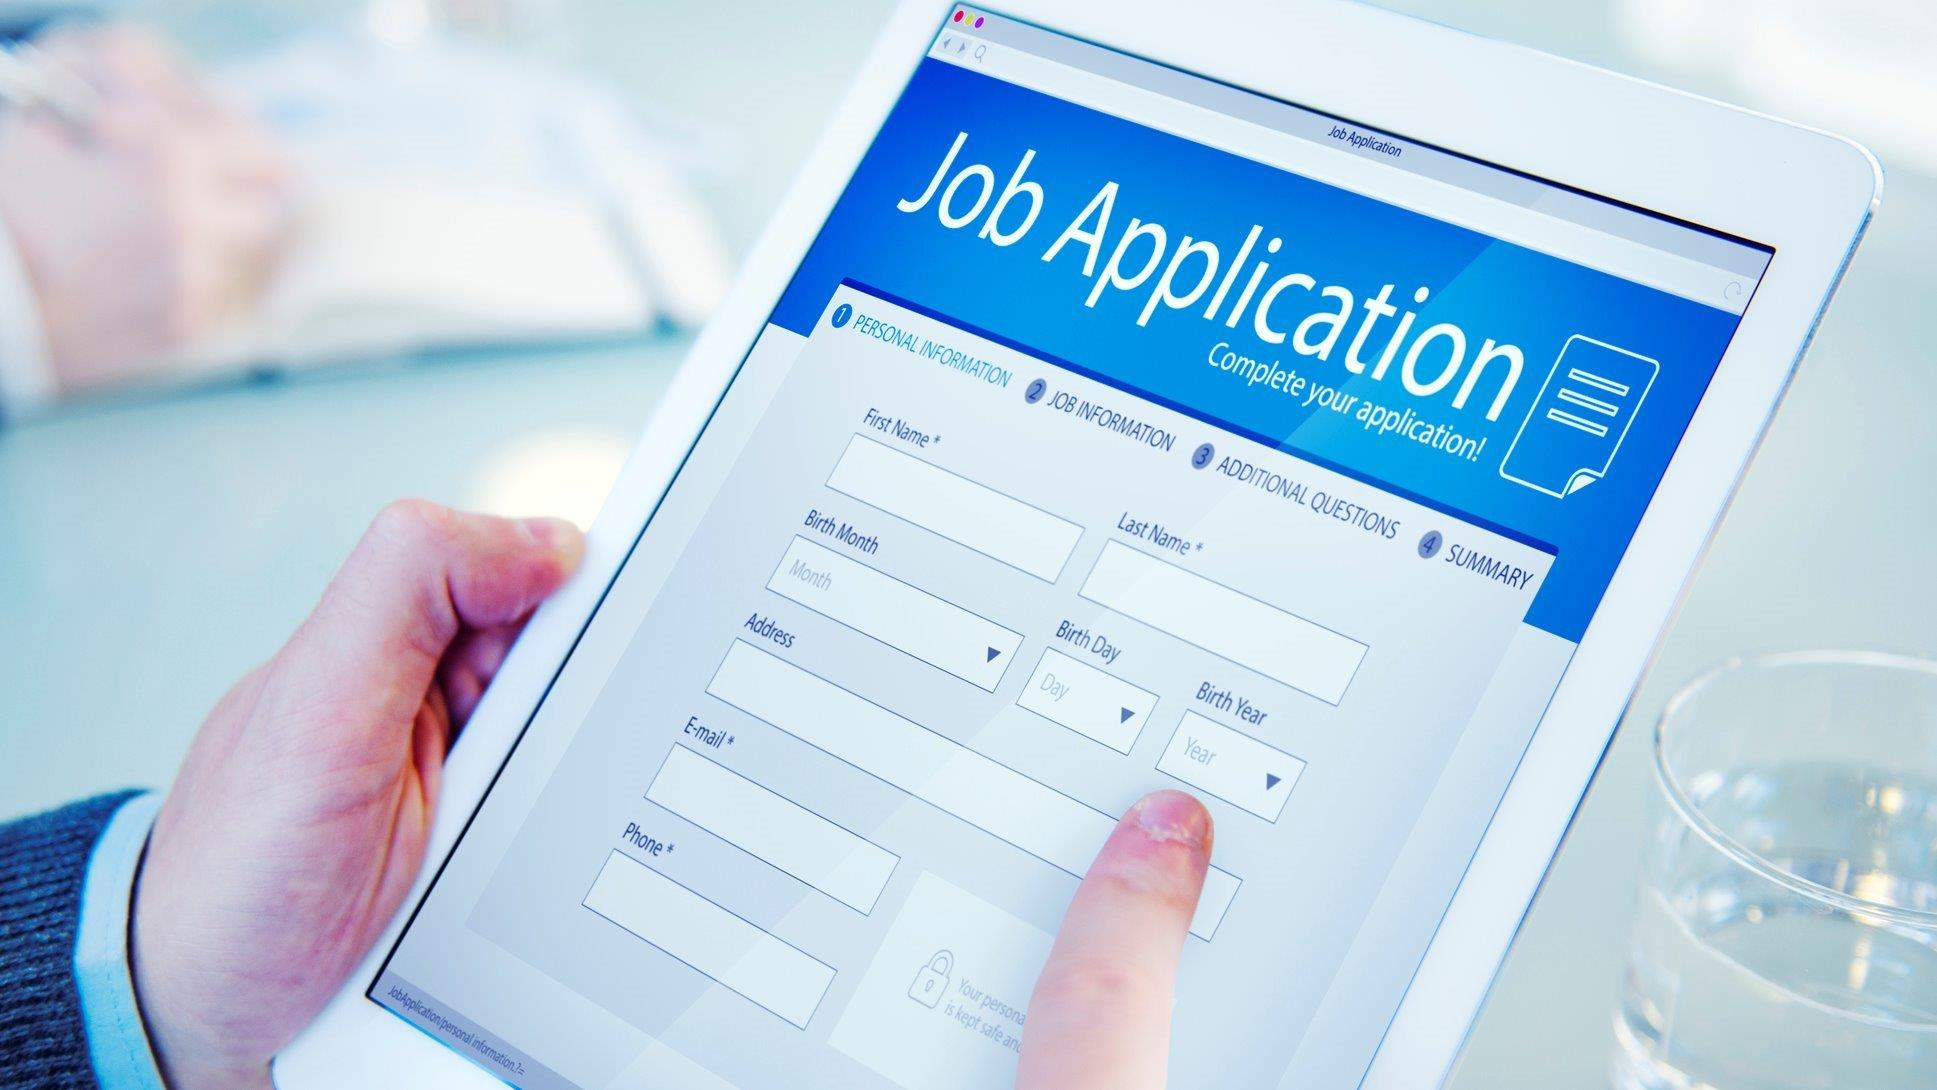 The Silent Partner Marketing CEO Kyle Reyes on requiring job applicants to take a 'snowflake test.'